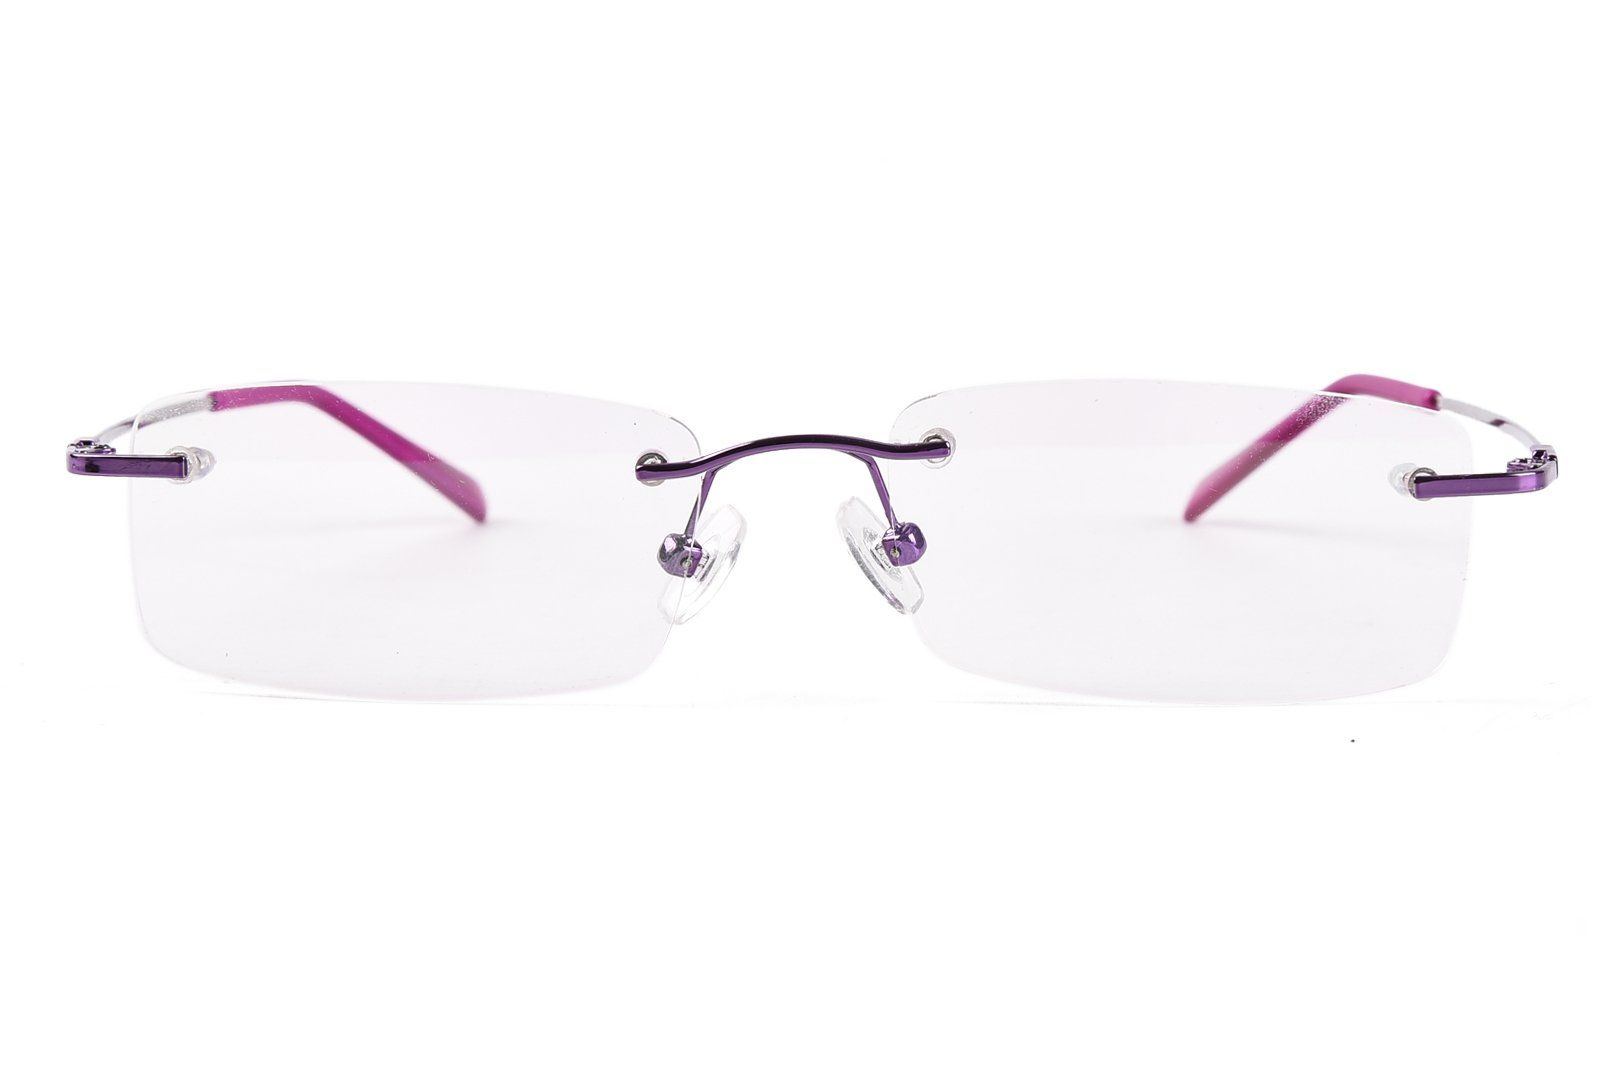 0f318c6656f Agstum Titanium Alloy Flexible Rimless Frame Prescription Eyeglasses Purple     You can get more details